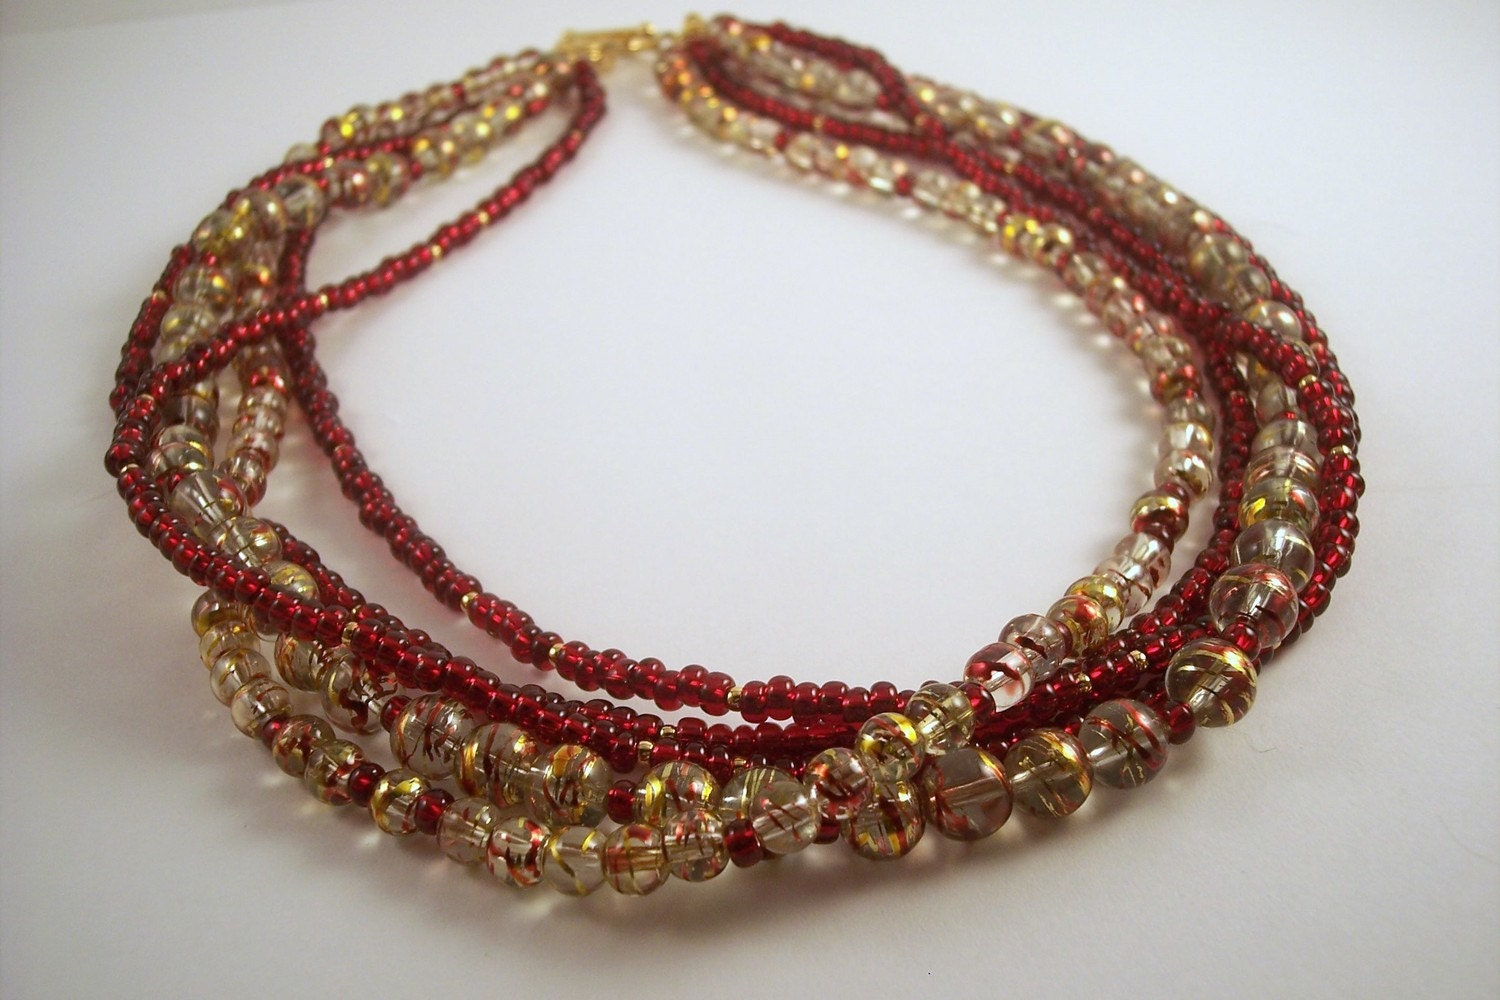 Red & Gold Multi-Strand Necklace